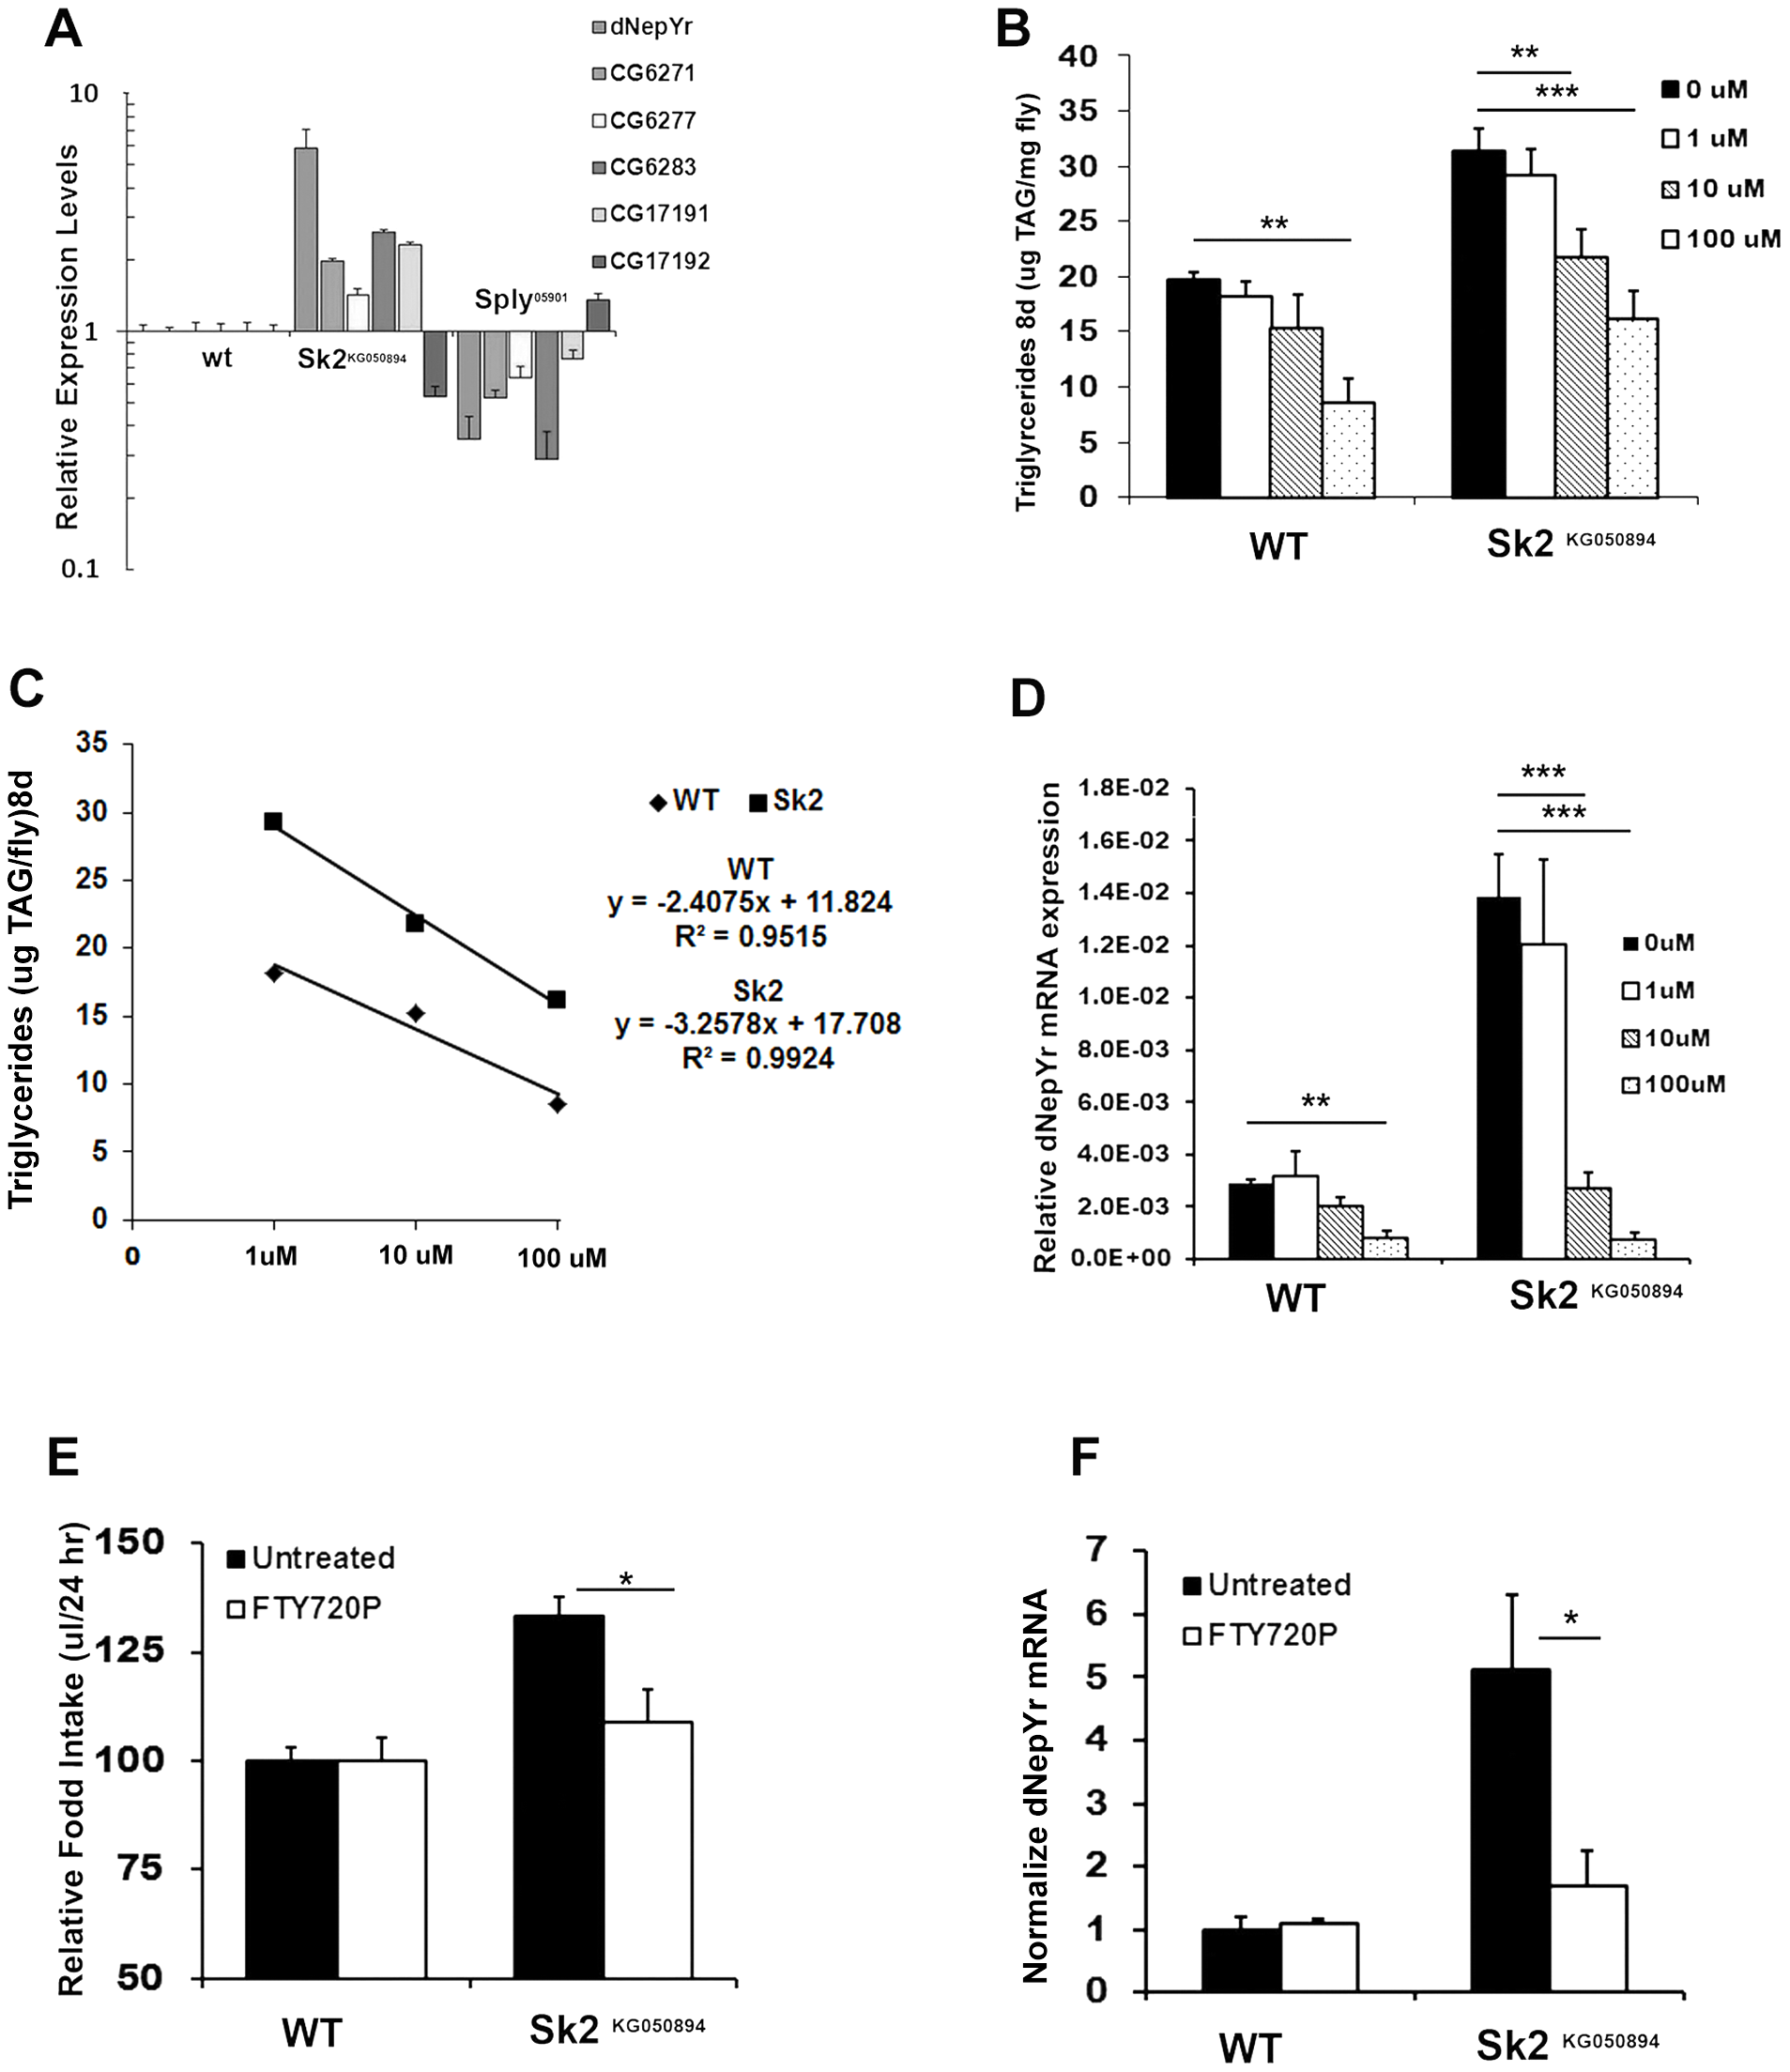 The ceramide:S1P rheostat's role in regulating <i>dNepYr</i> expression and caloric intake.